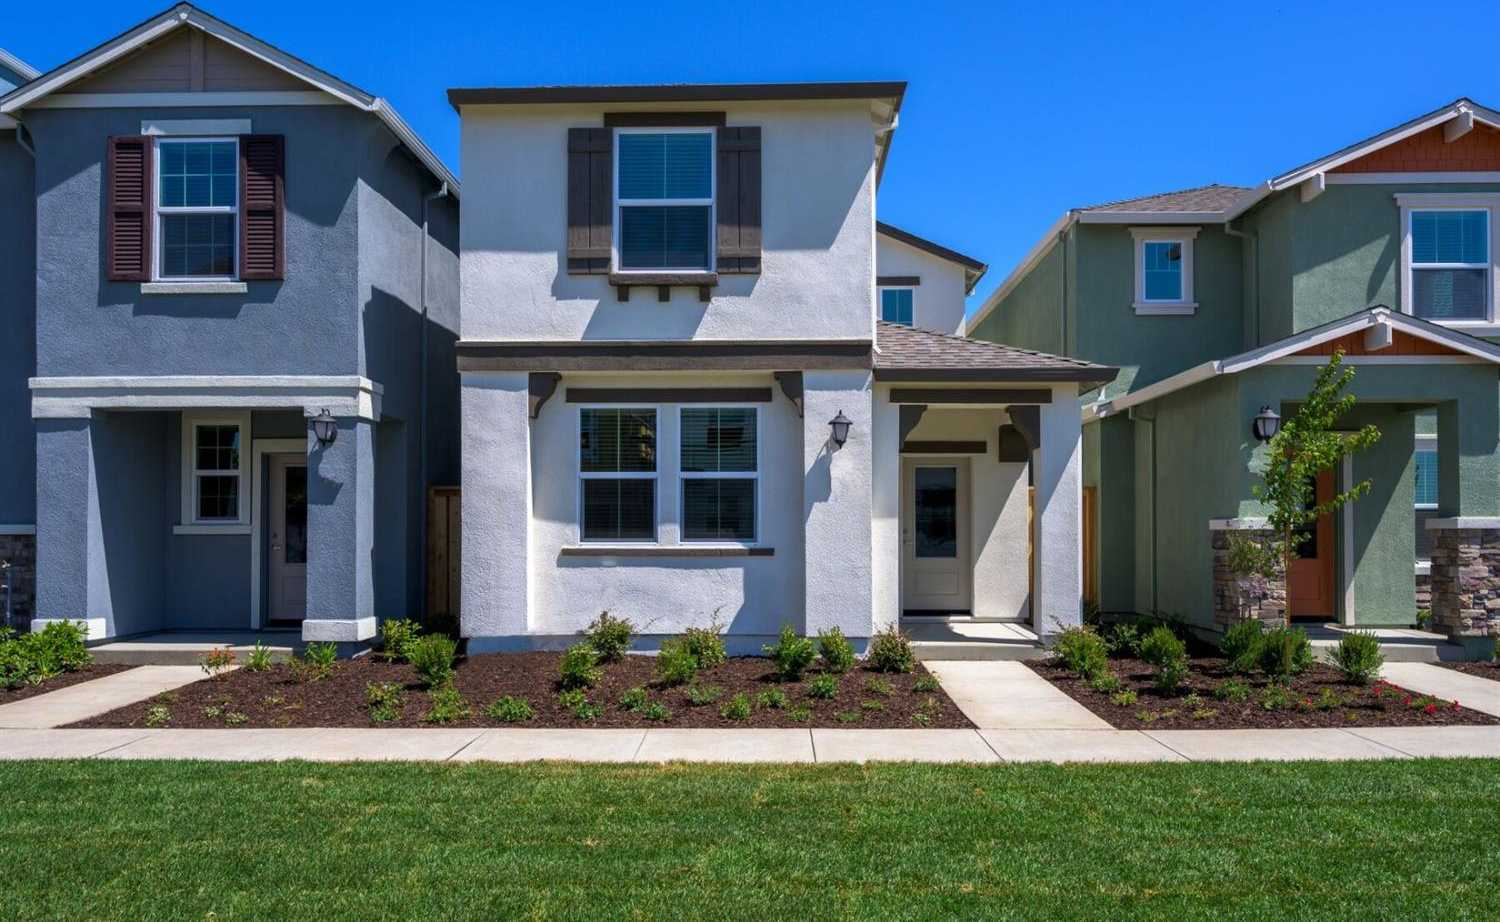 $392,900 - 3Br/3Ba -  for Sale in Port Towne At Bridgeway Lakes, West Sacramento